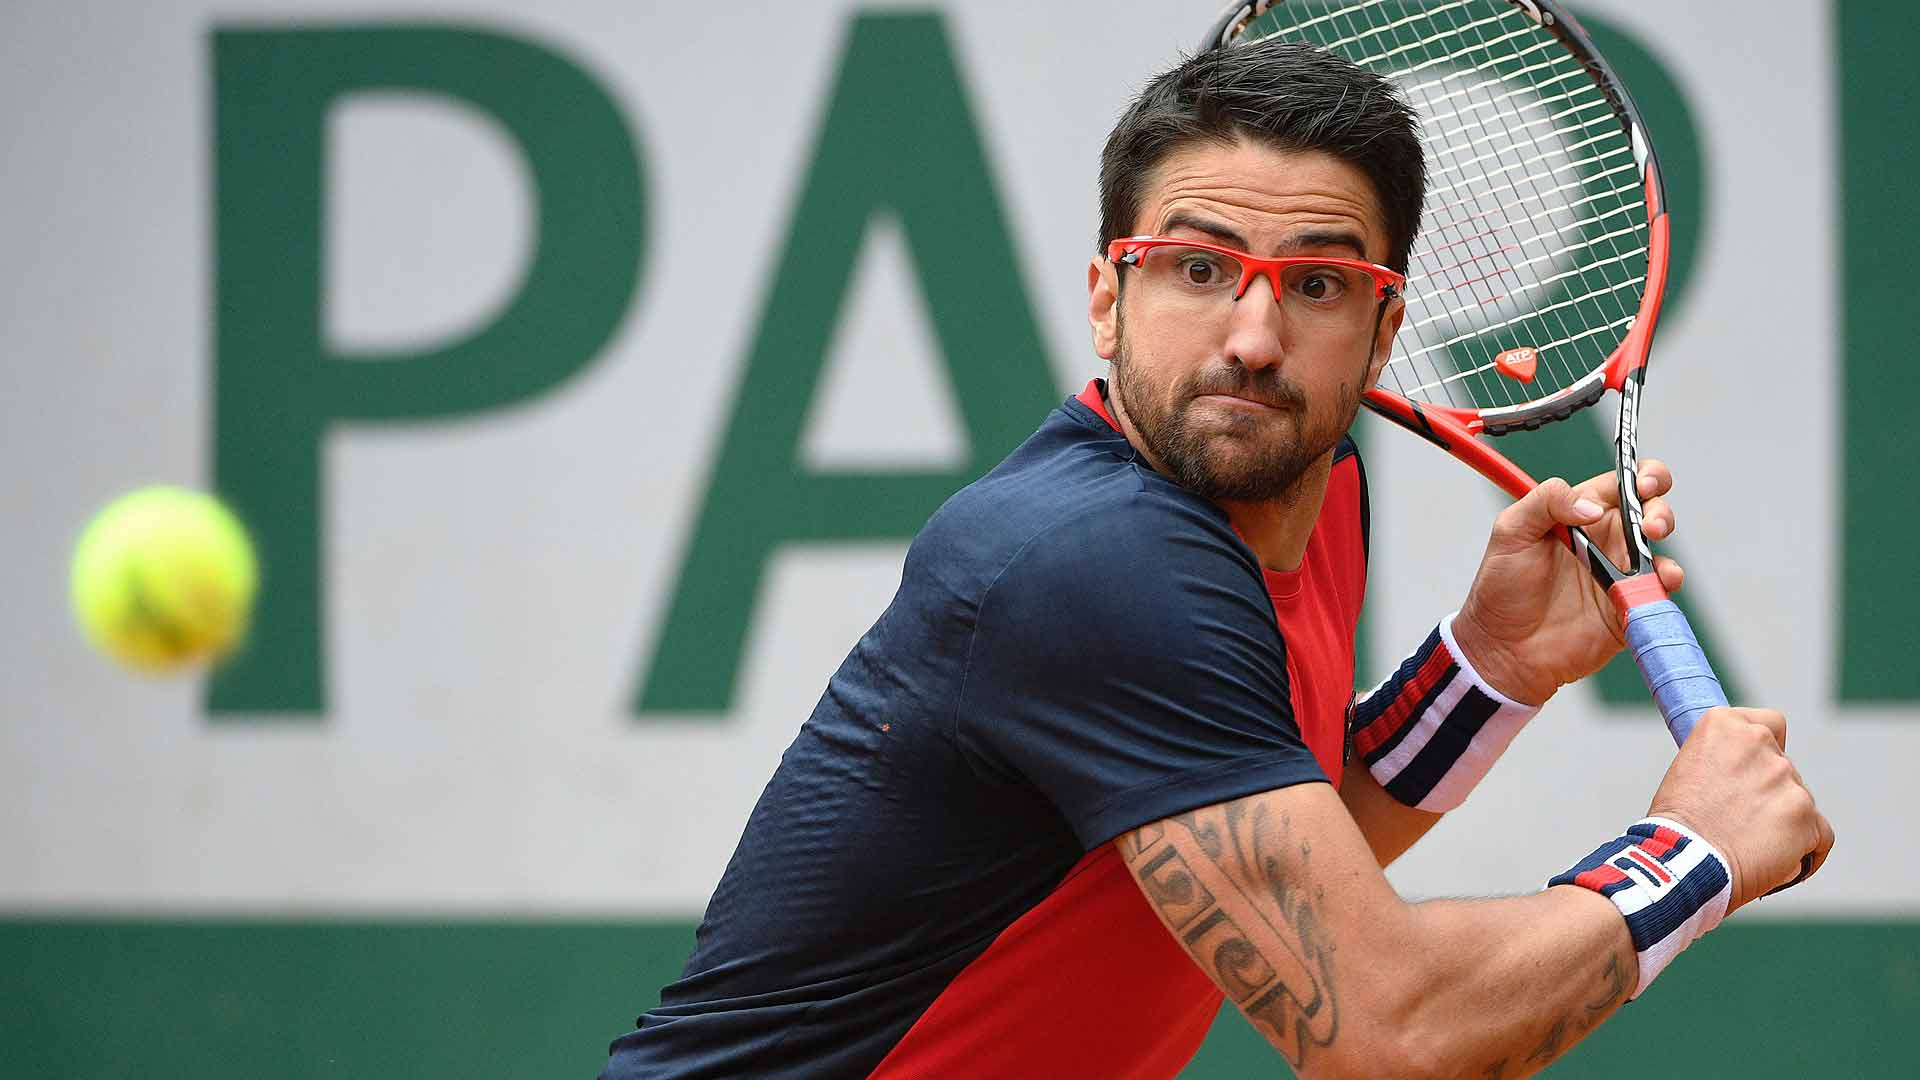 Janko Tipsarevic is continuing his comeback at Roland Garros.